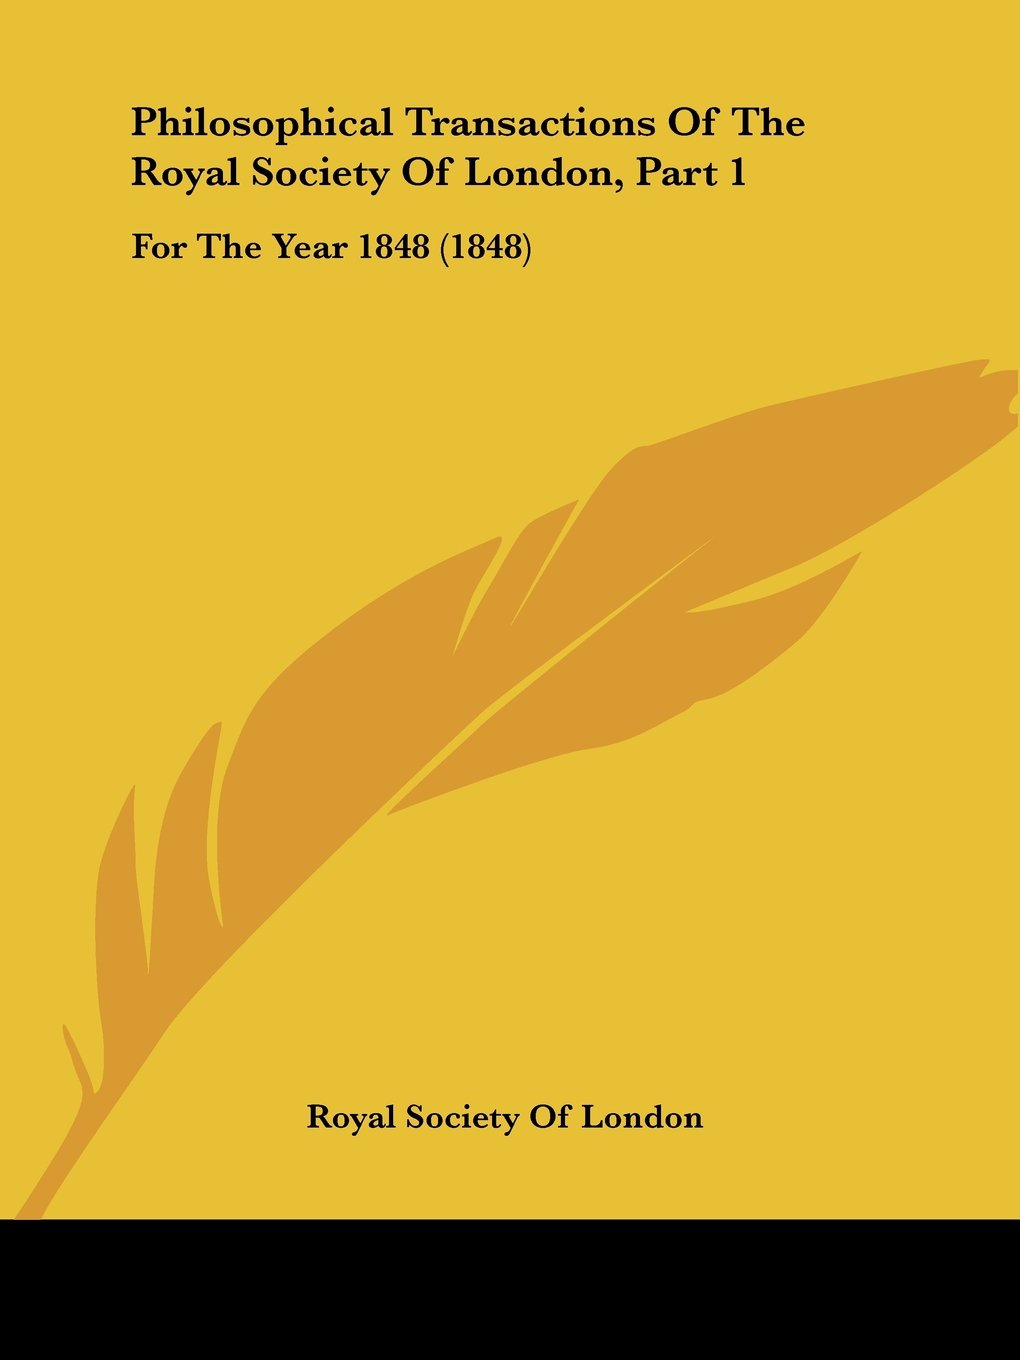 Philosophical Transactions Of The Royal Society Of London, Part 1: For The Year 1848 (1848) PDF